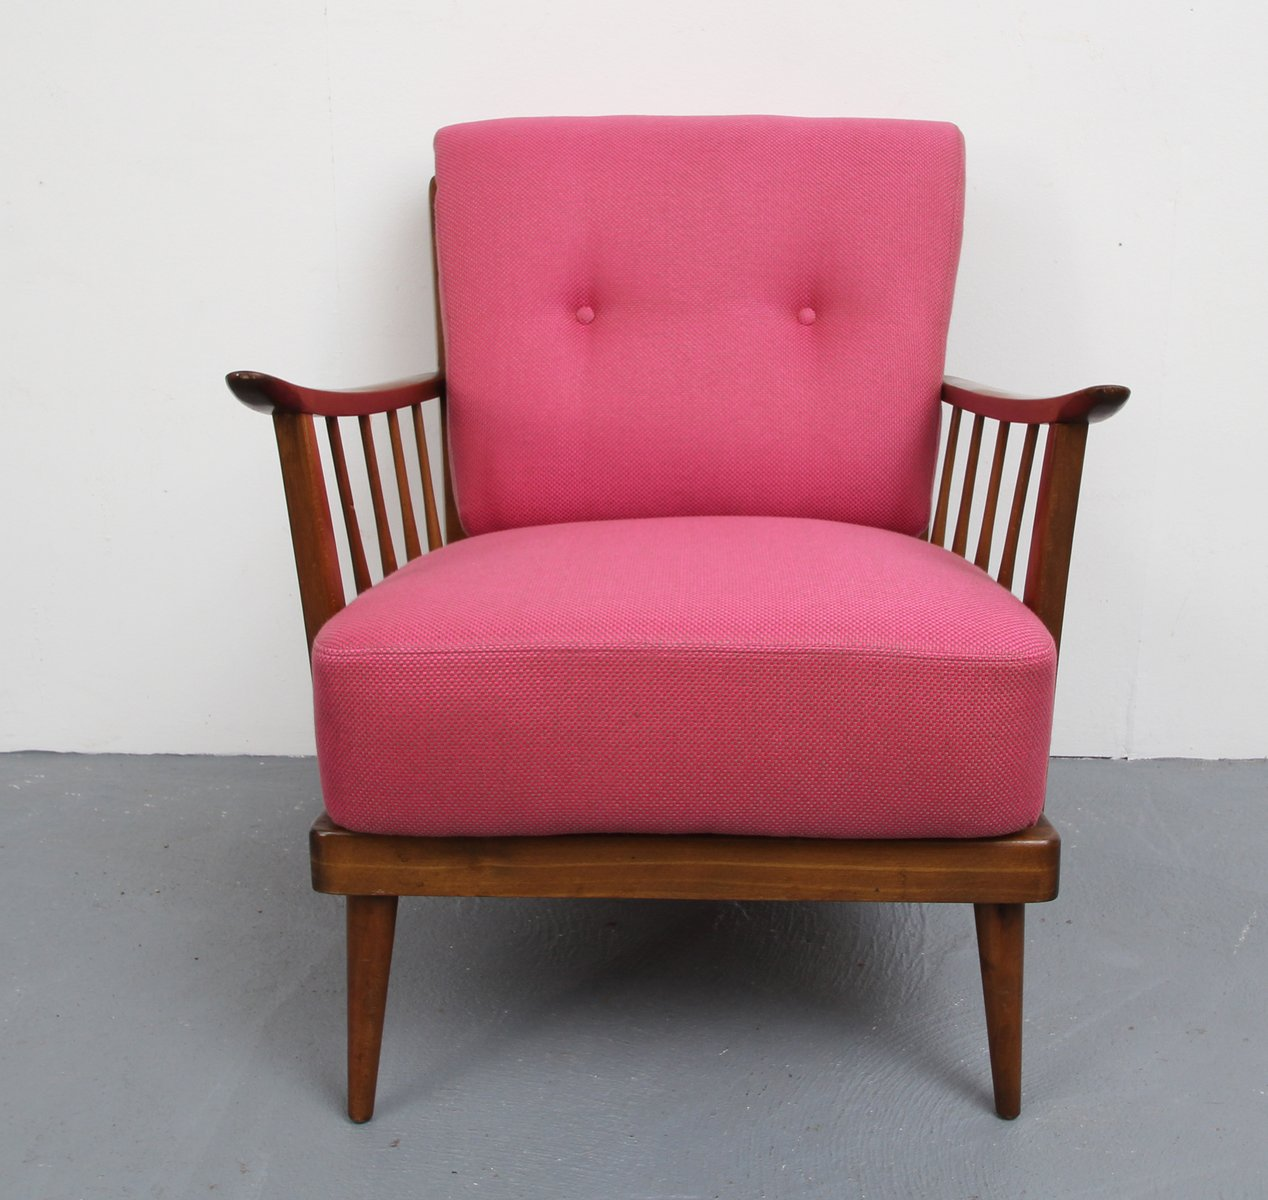 pink arm chair weatherproof adirondack chairs armchair 1950s for sale at pamono